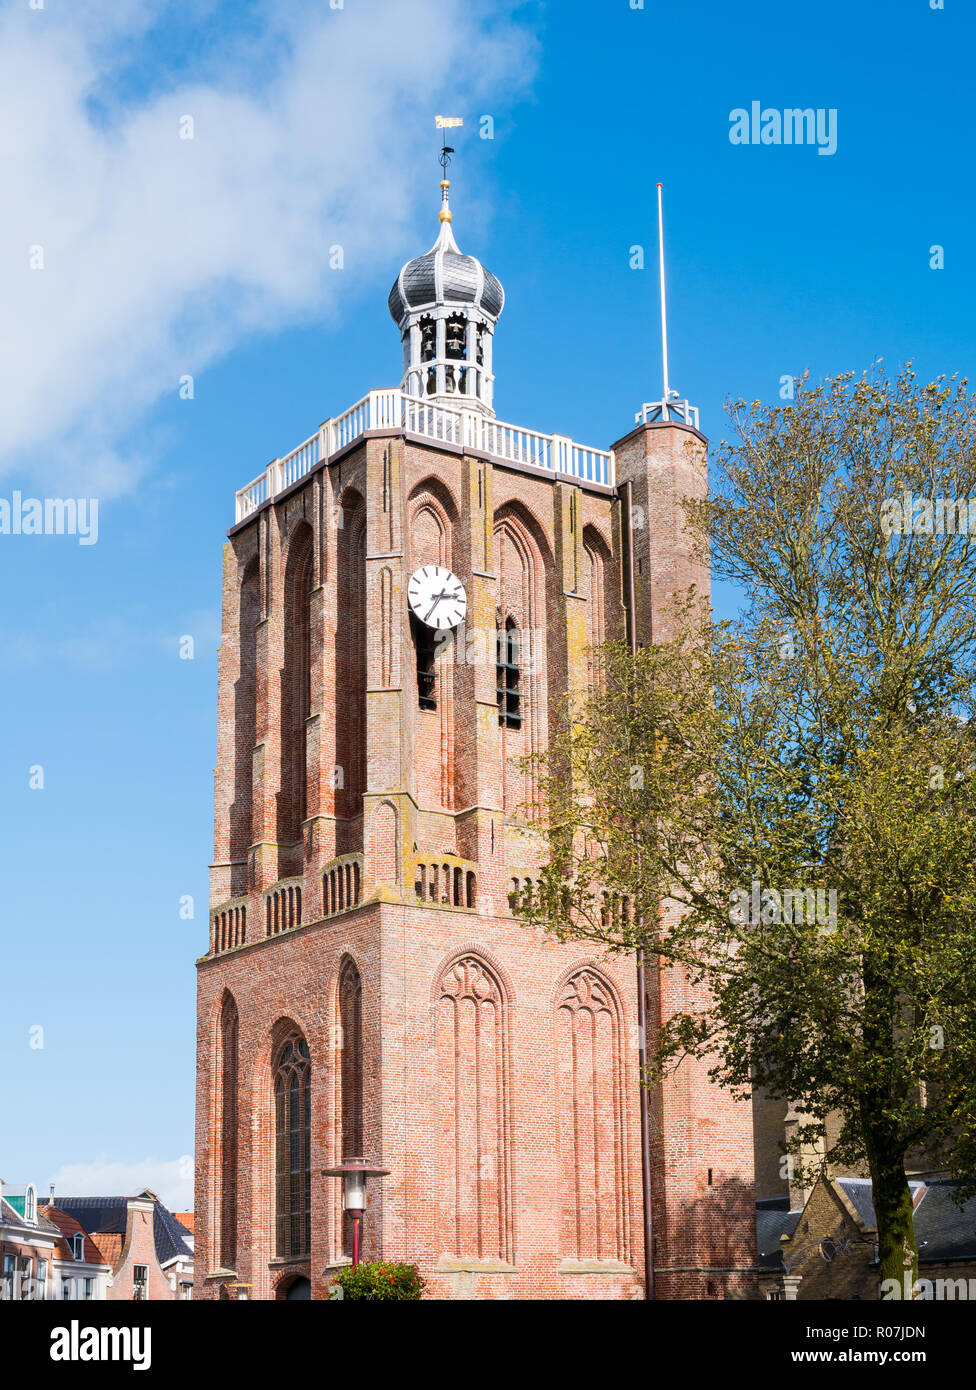 Tower of Great Saint Gertrudes Church in city centre of historic town of Workum, Friesland, Netherlands Stock Photo